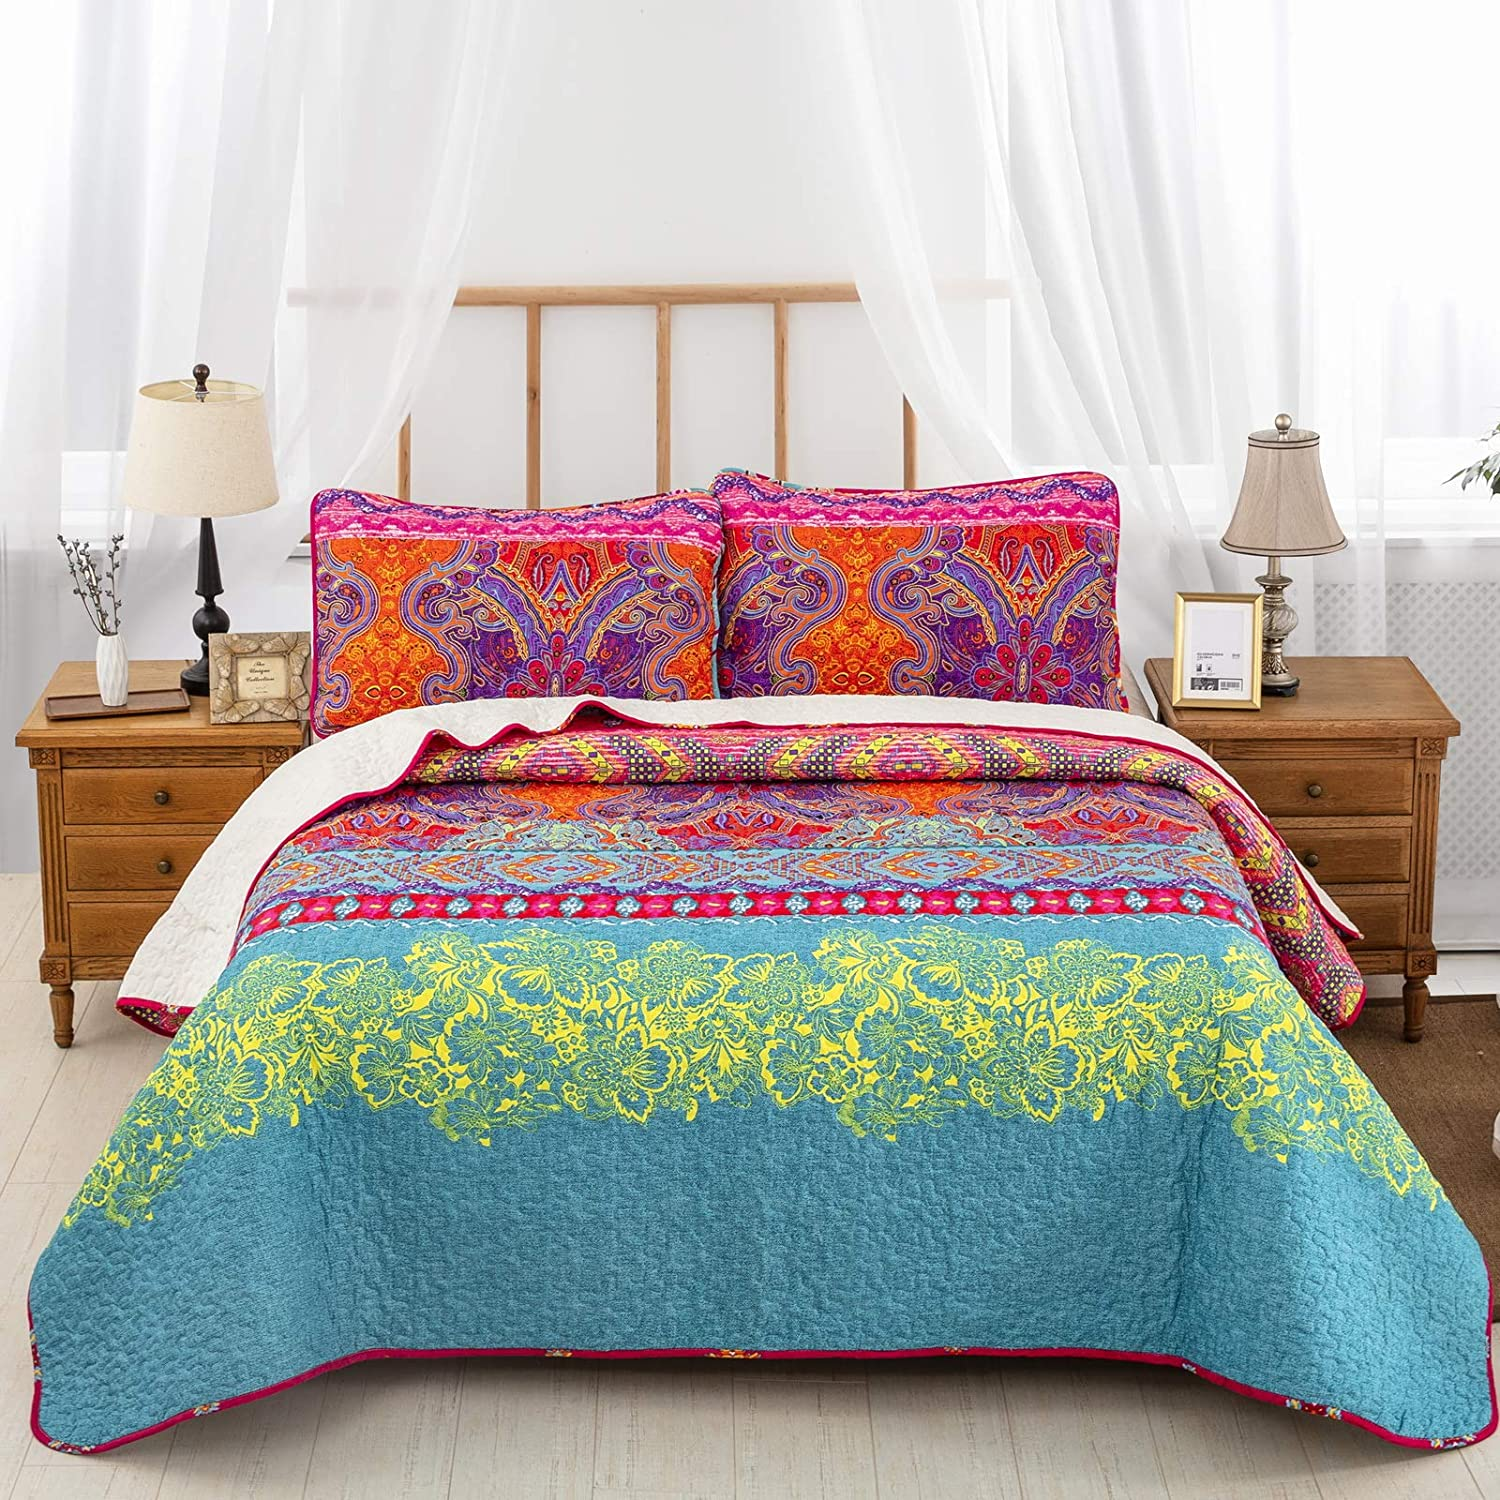 Bohemian Quilt King 3 Pieces Boho Coverlet Pill 70% OFF Outlet 2 with Set 5% OFF